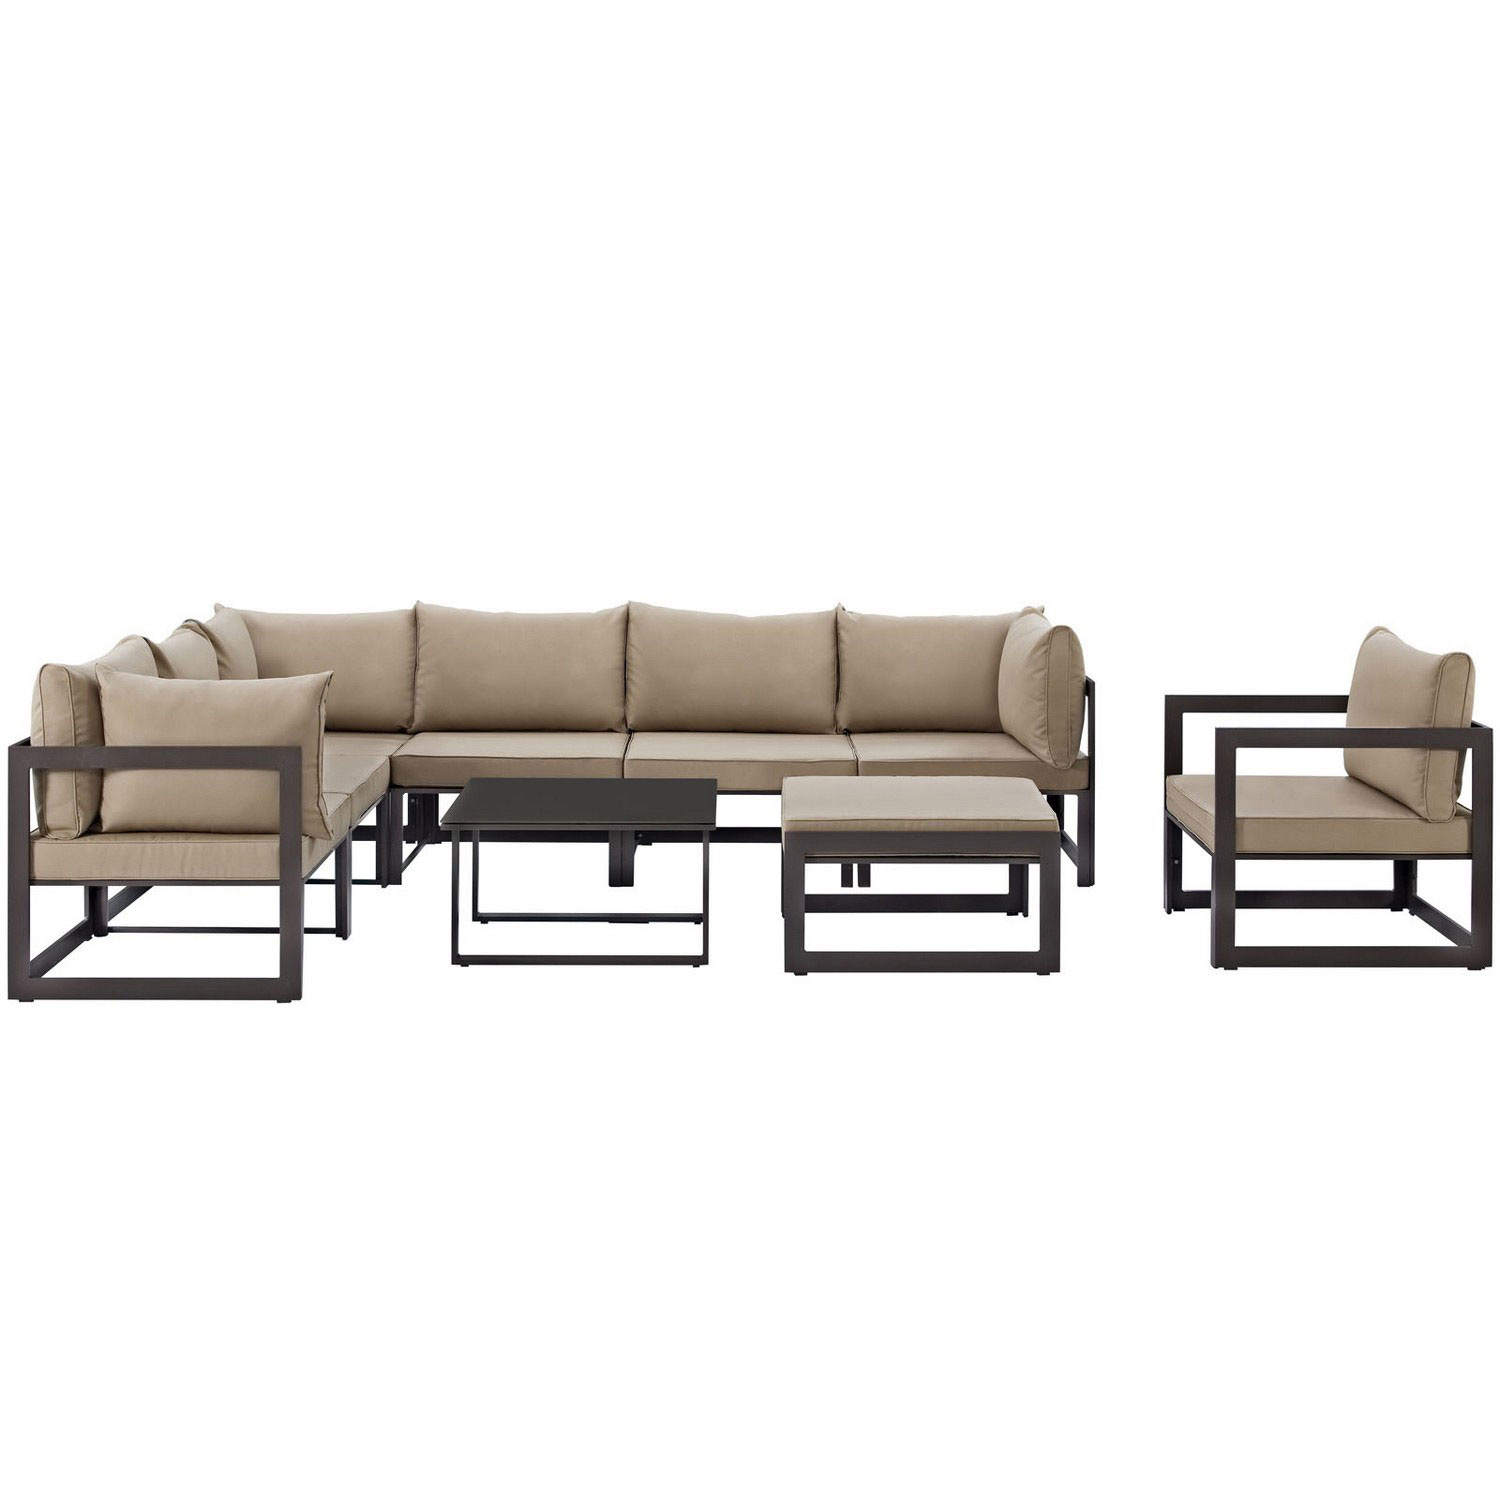 Modway Fortuna 9 Piece Outdoor Patio Sectional Sofa Set - Brown/Mocha